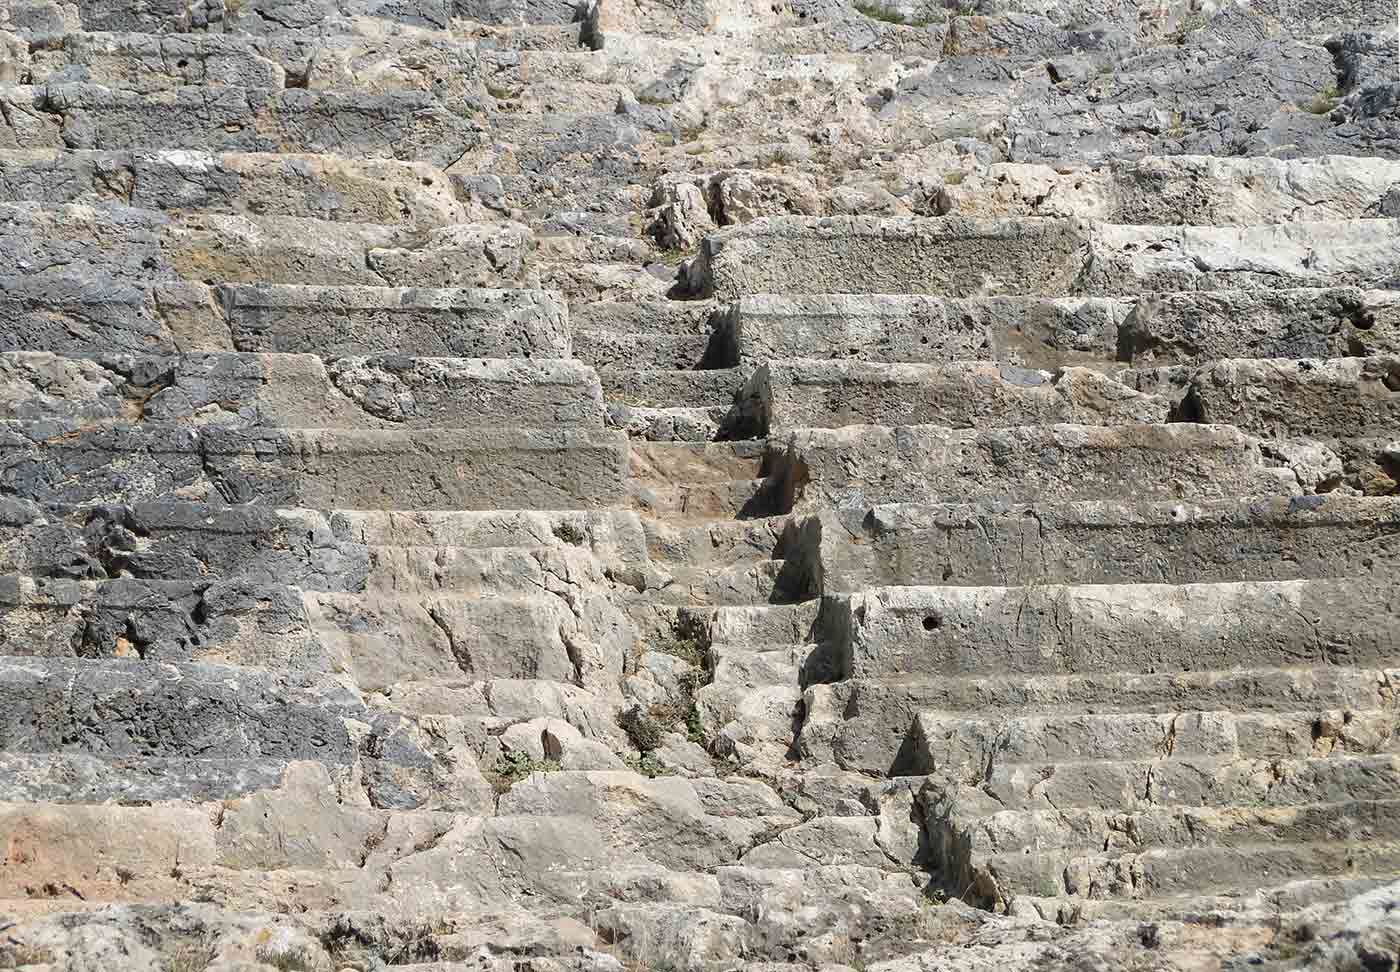 Stairs of the Ancient Greek theatre in Lindos, Rhodes, Greece.